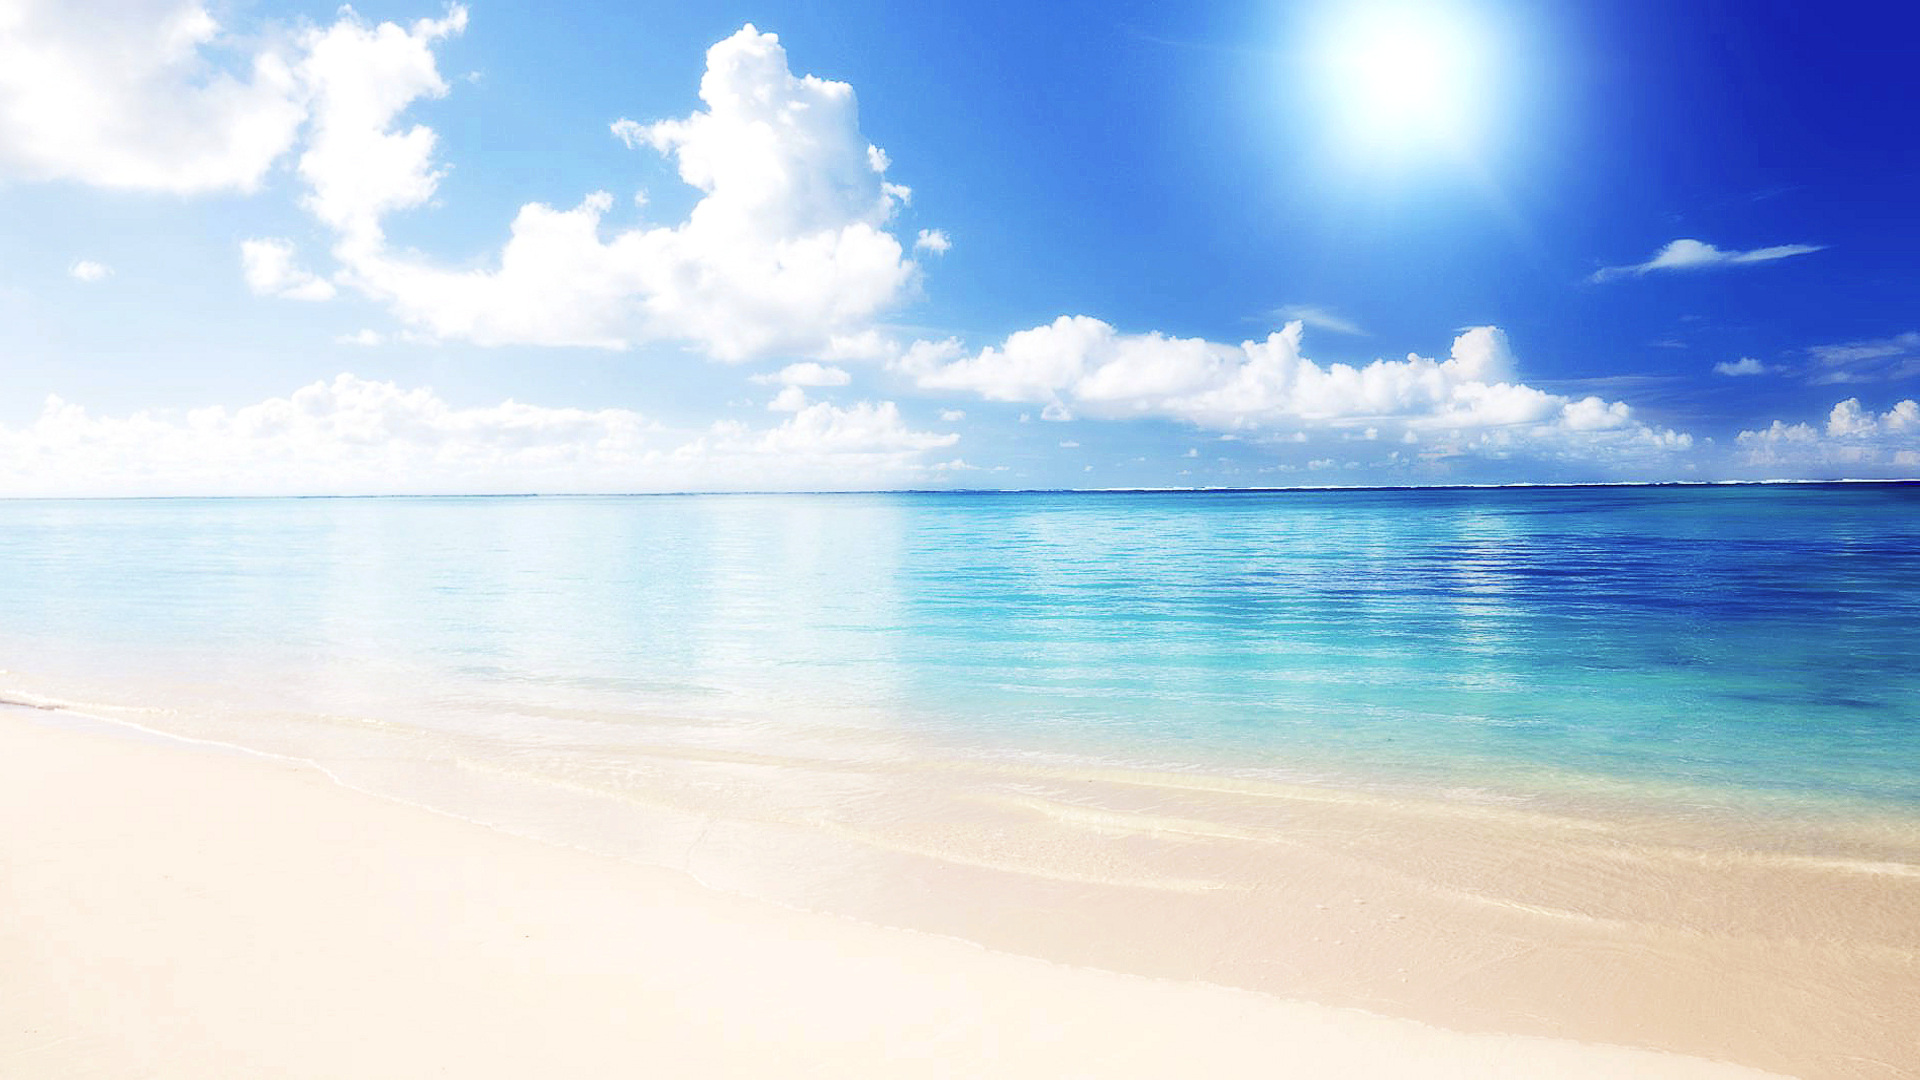 Beach Background Hd Desktop Wallpapers: Beach Wallpapers, Pictures, Images